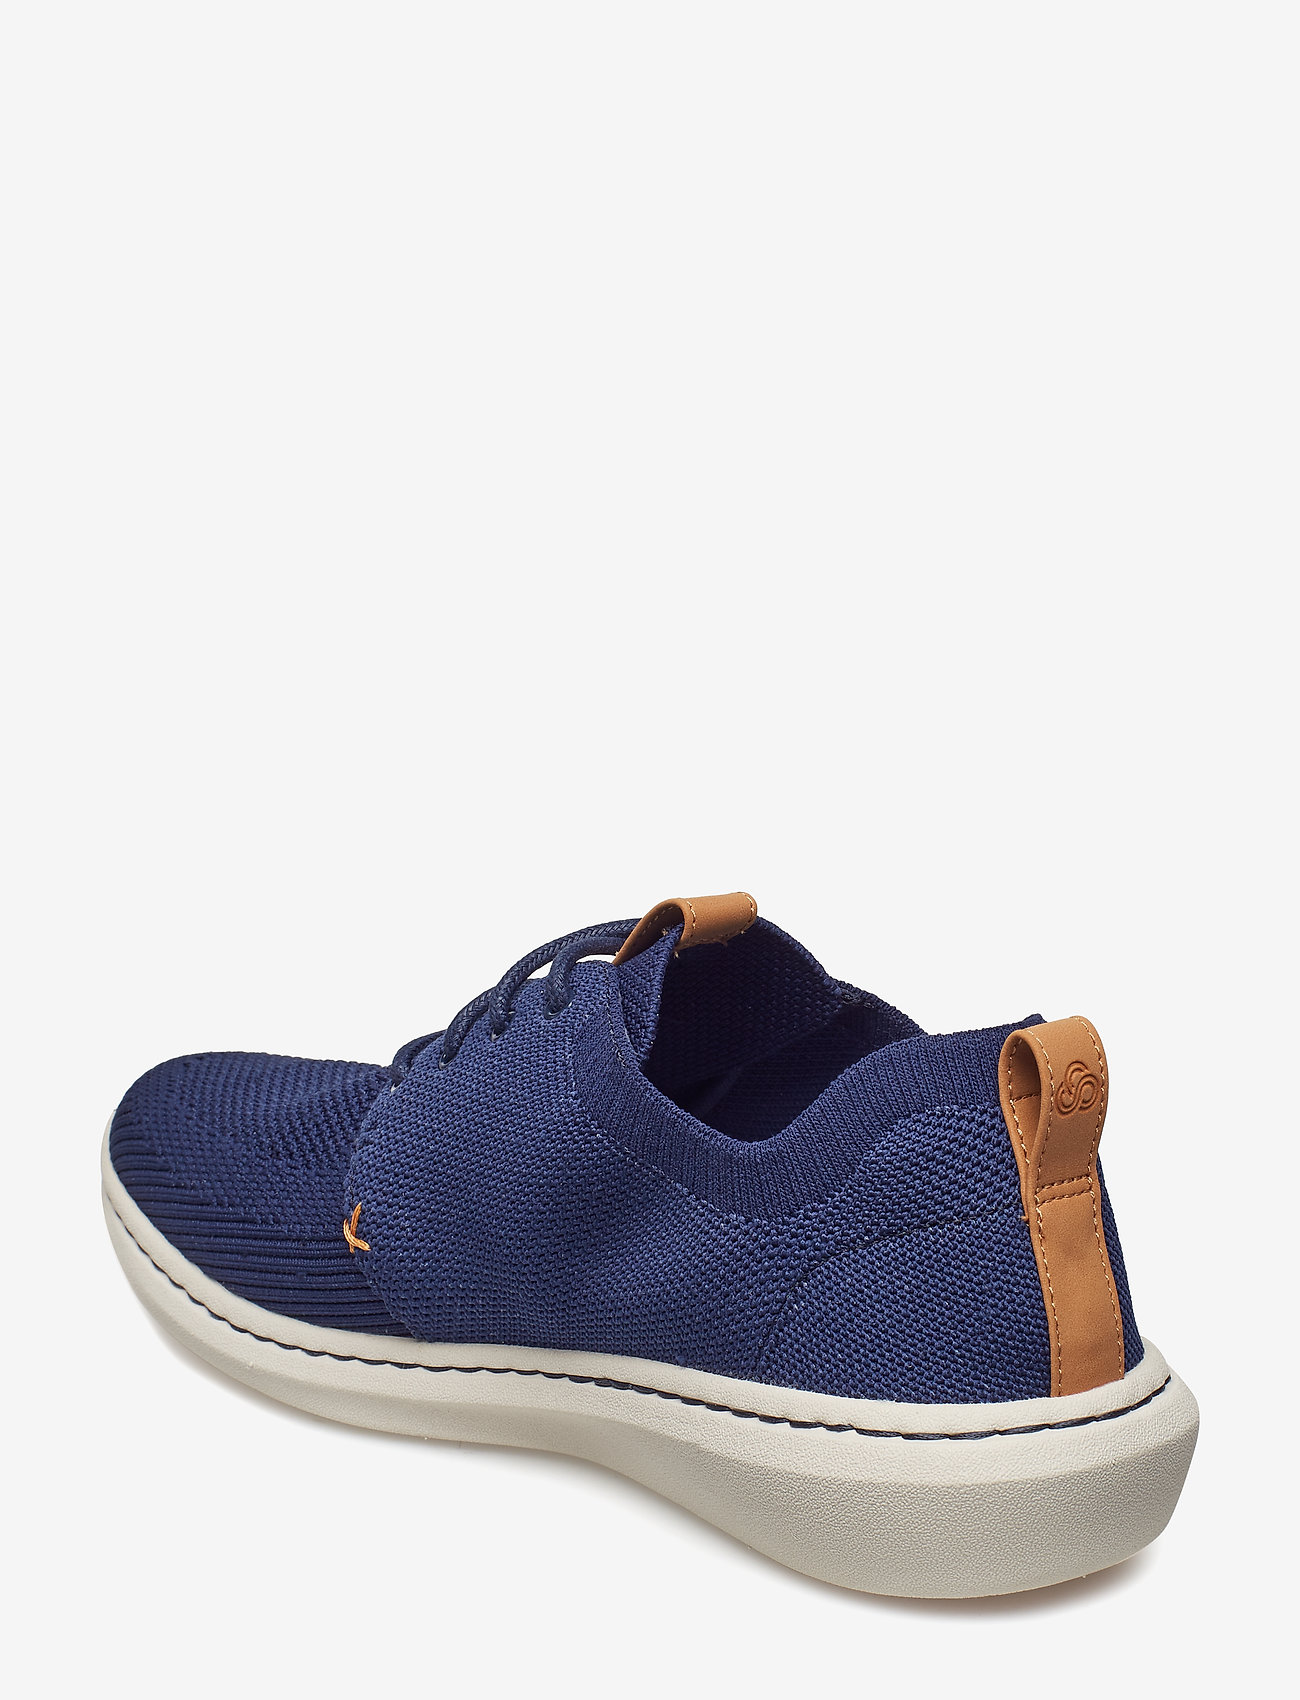 Step Urban Mix (Navy) - Clarks